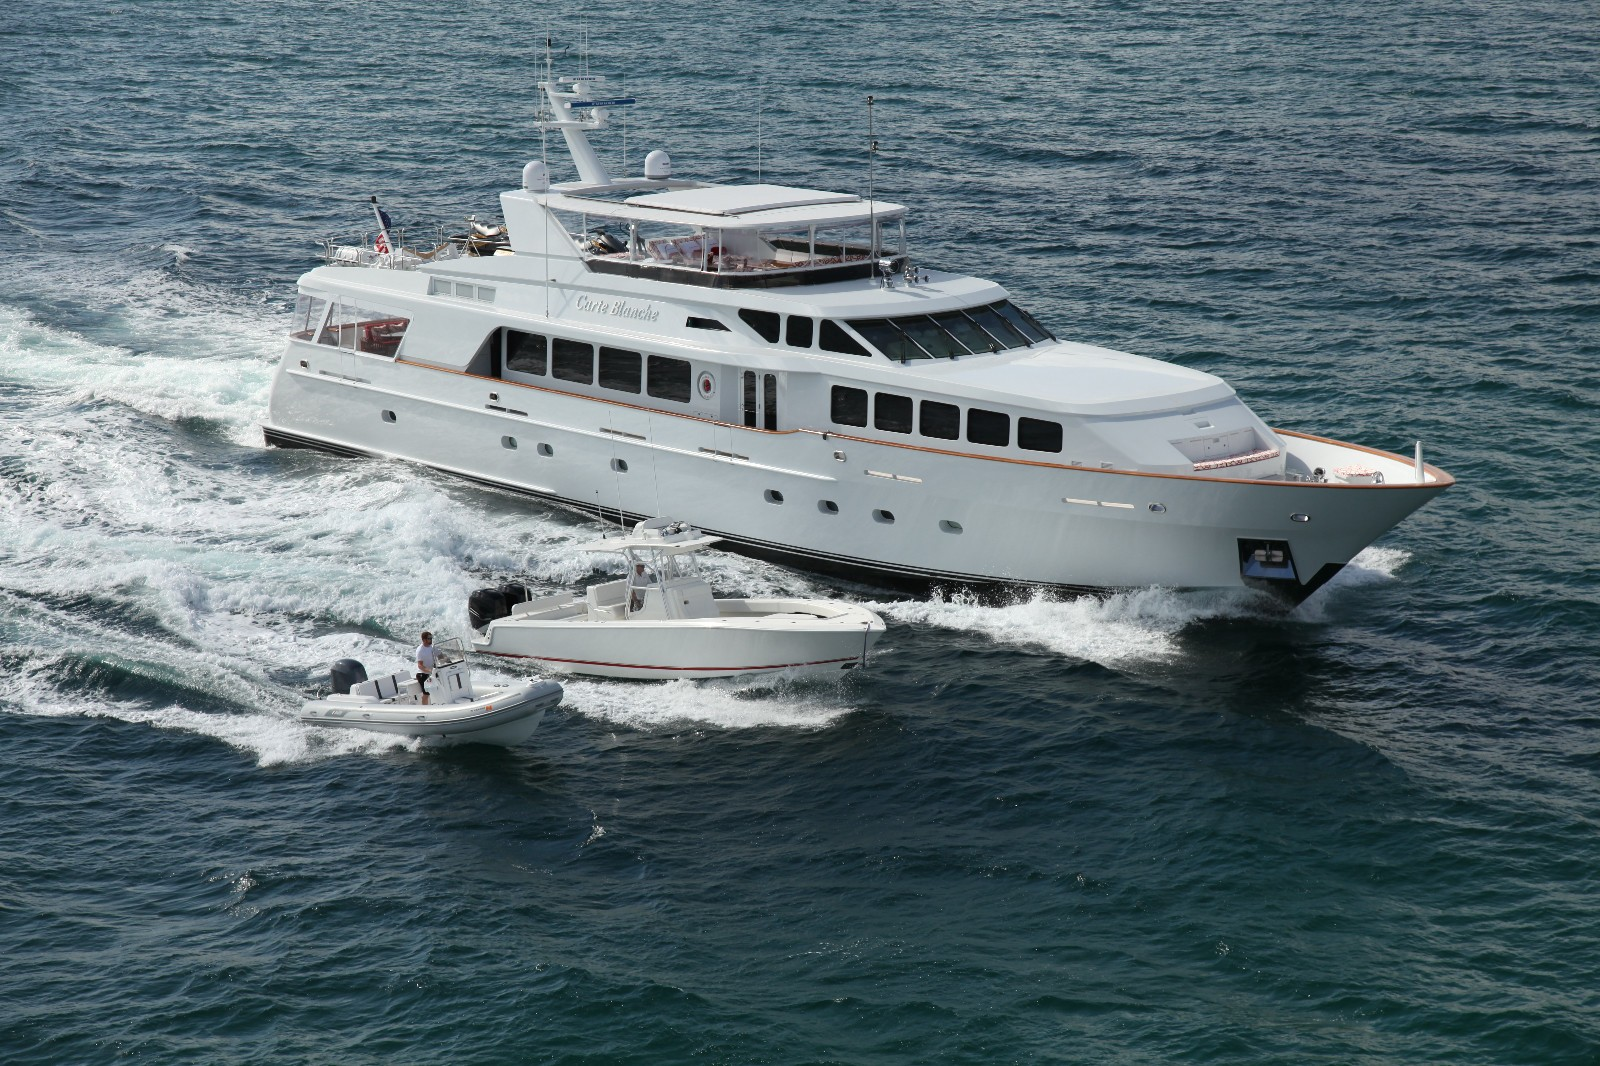 carte blanche yacht charter details  trinity yachts